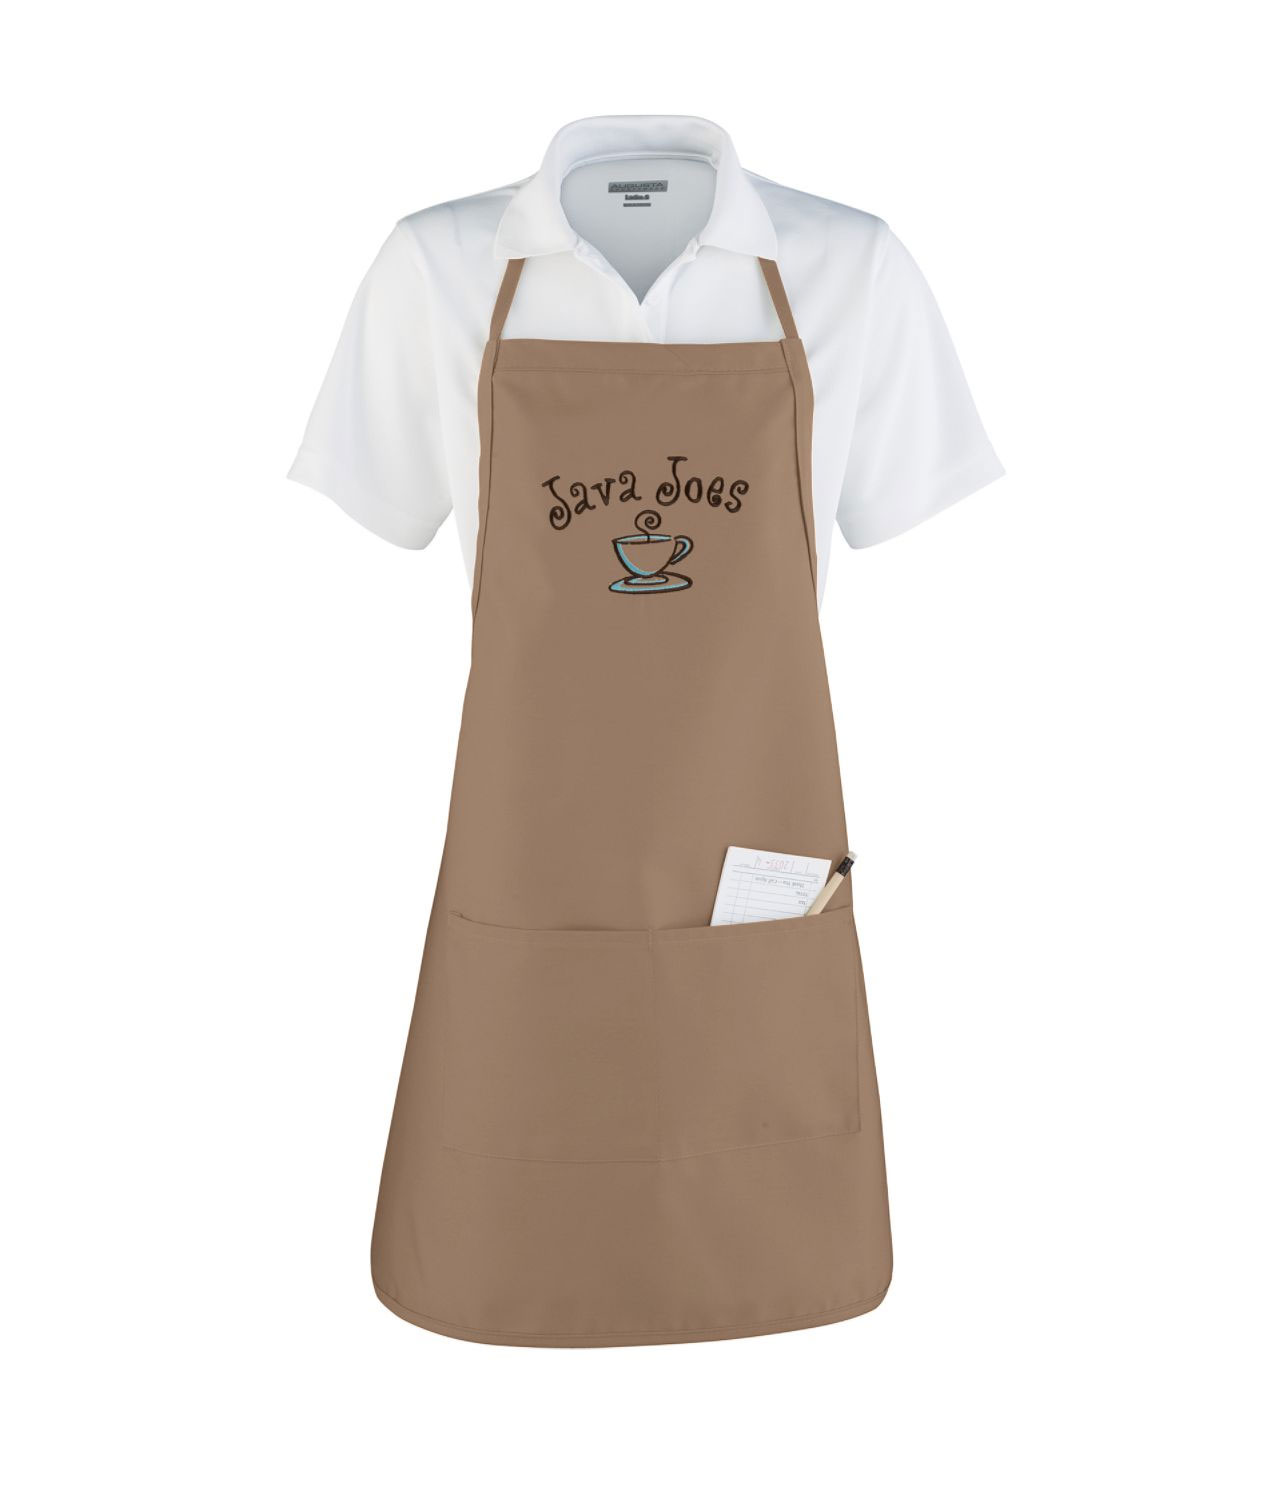 Apron With Adjustable Neck Loop and Waist Ties